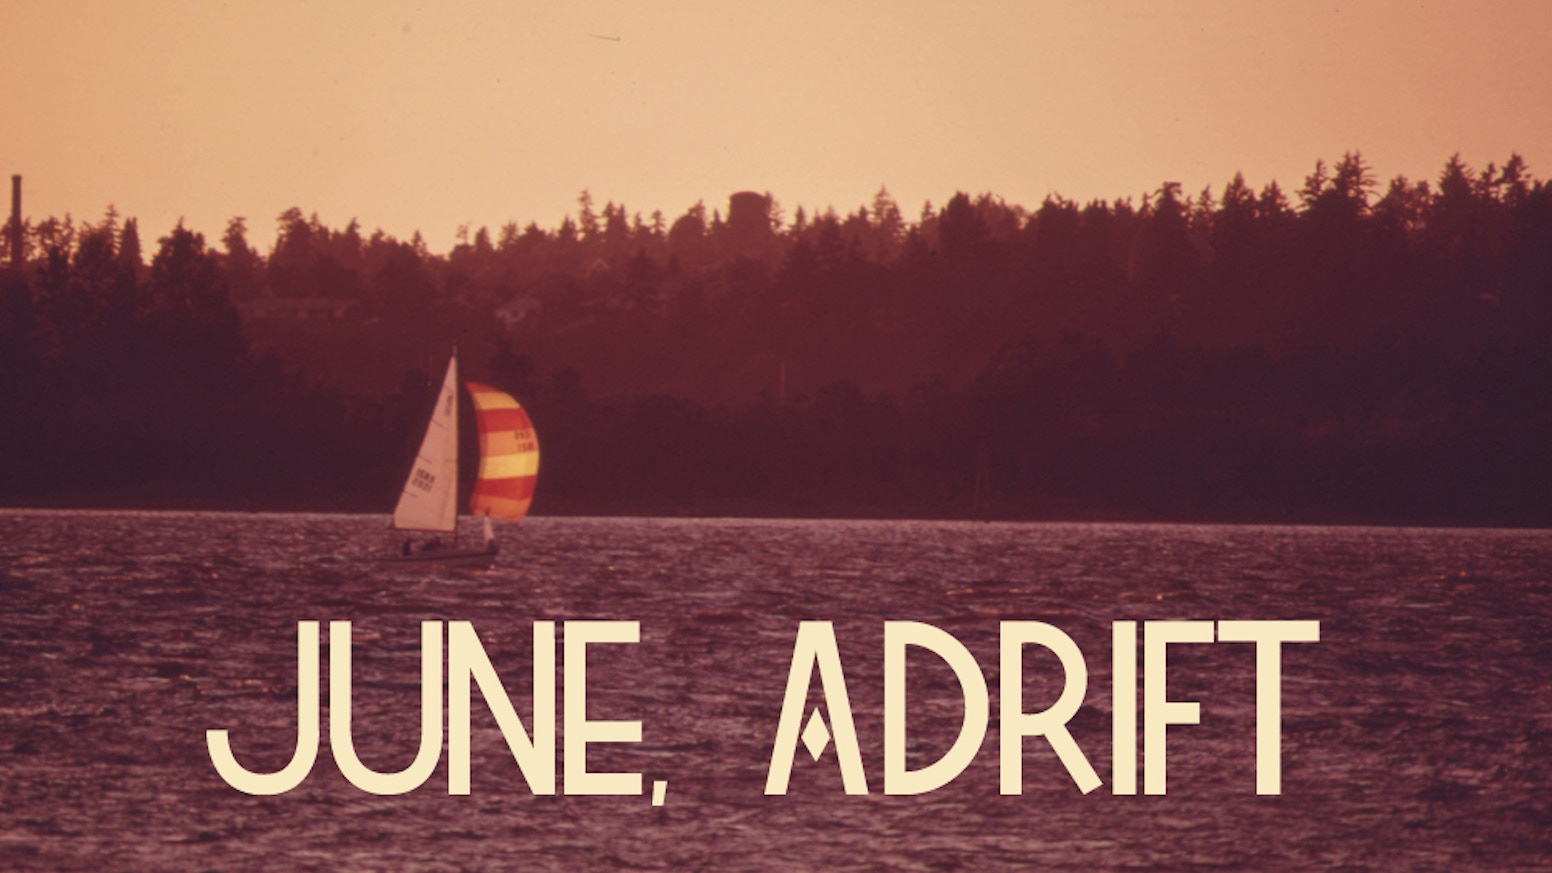 Fundraising for feature June, Adrift: Three millennial women flee Los Angeles on the impulse that building a sailboat in rural Maryland can fix their lives.